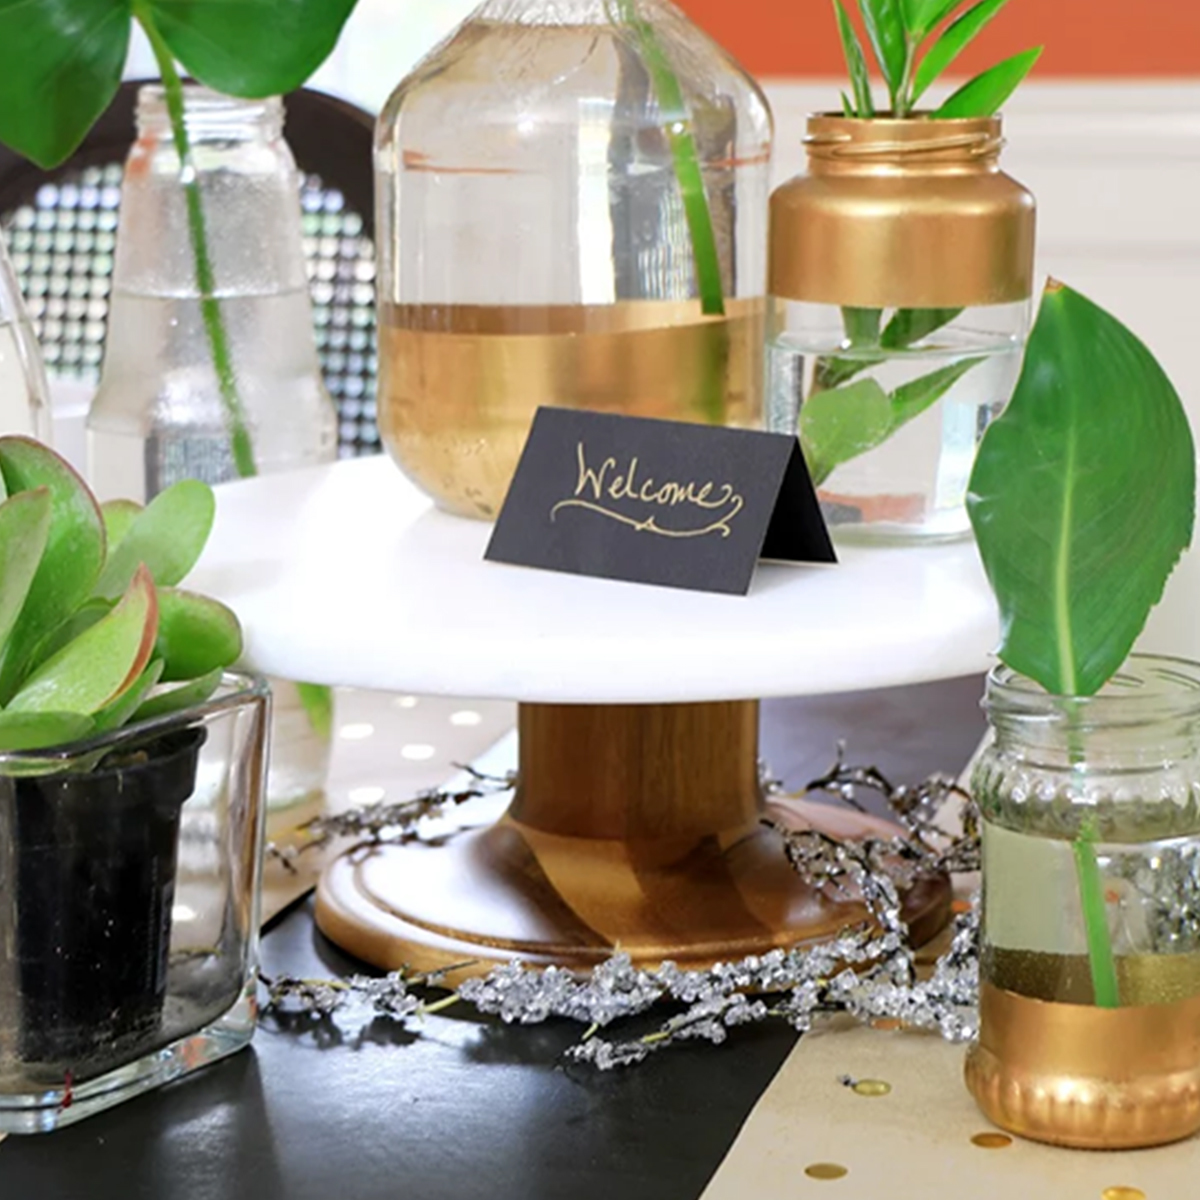 Better Homes & Gardens cake stand with gold vases next to it photo